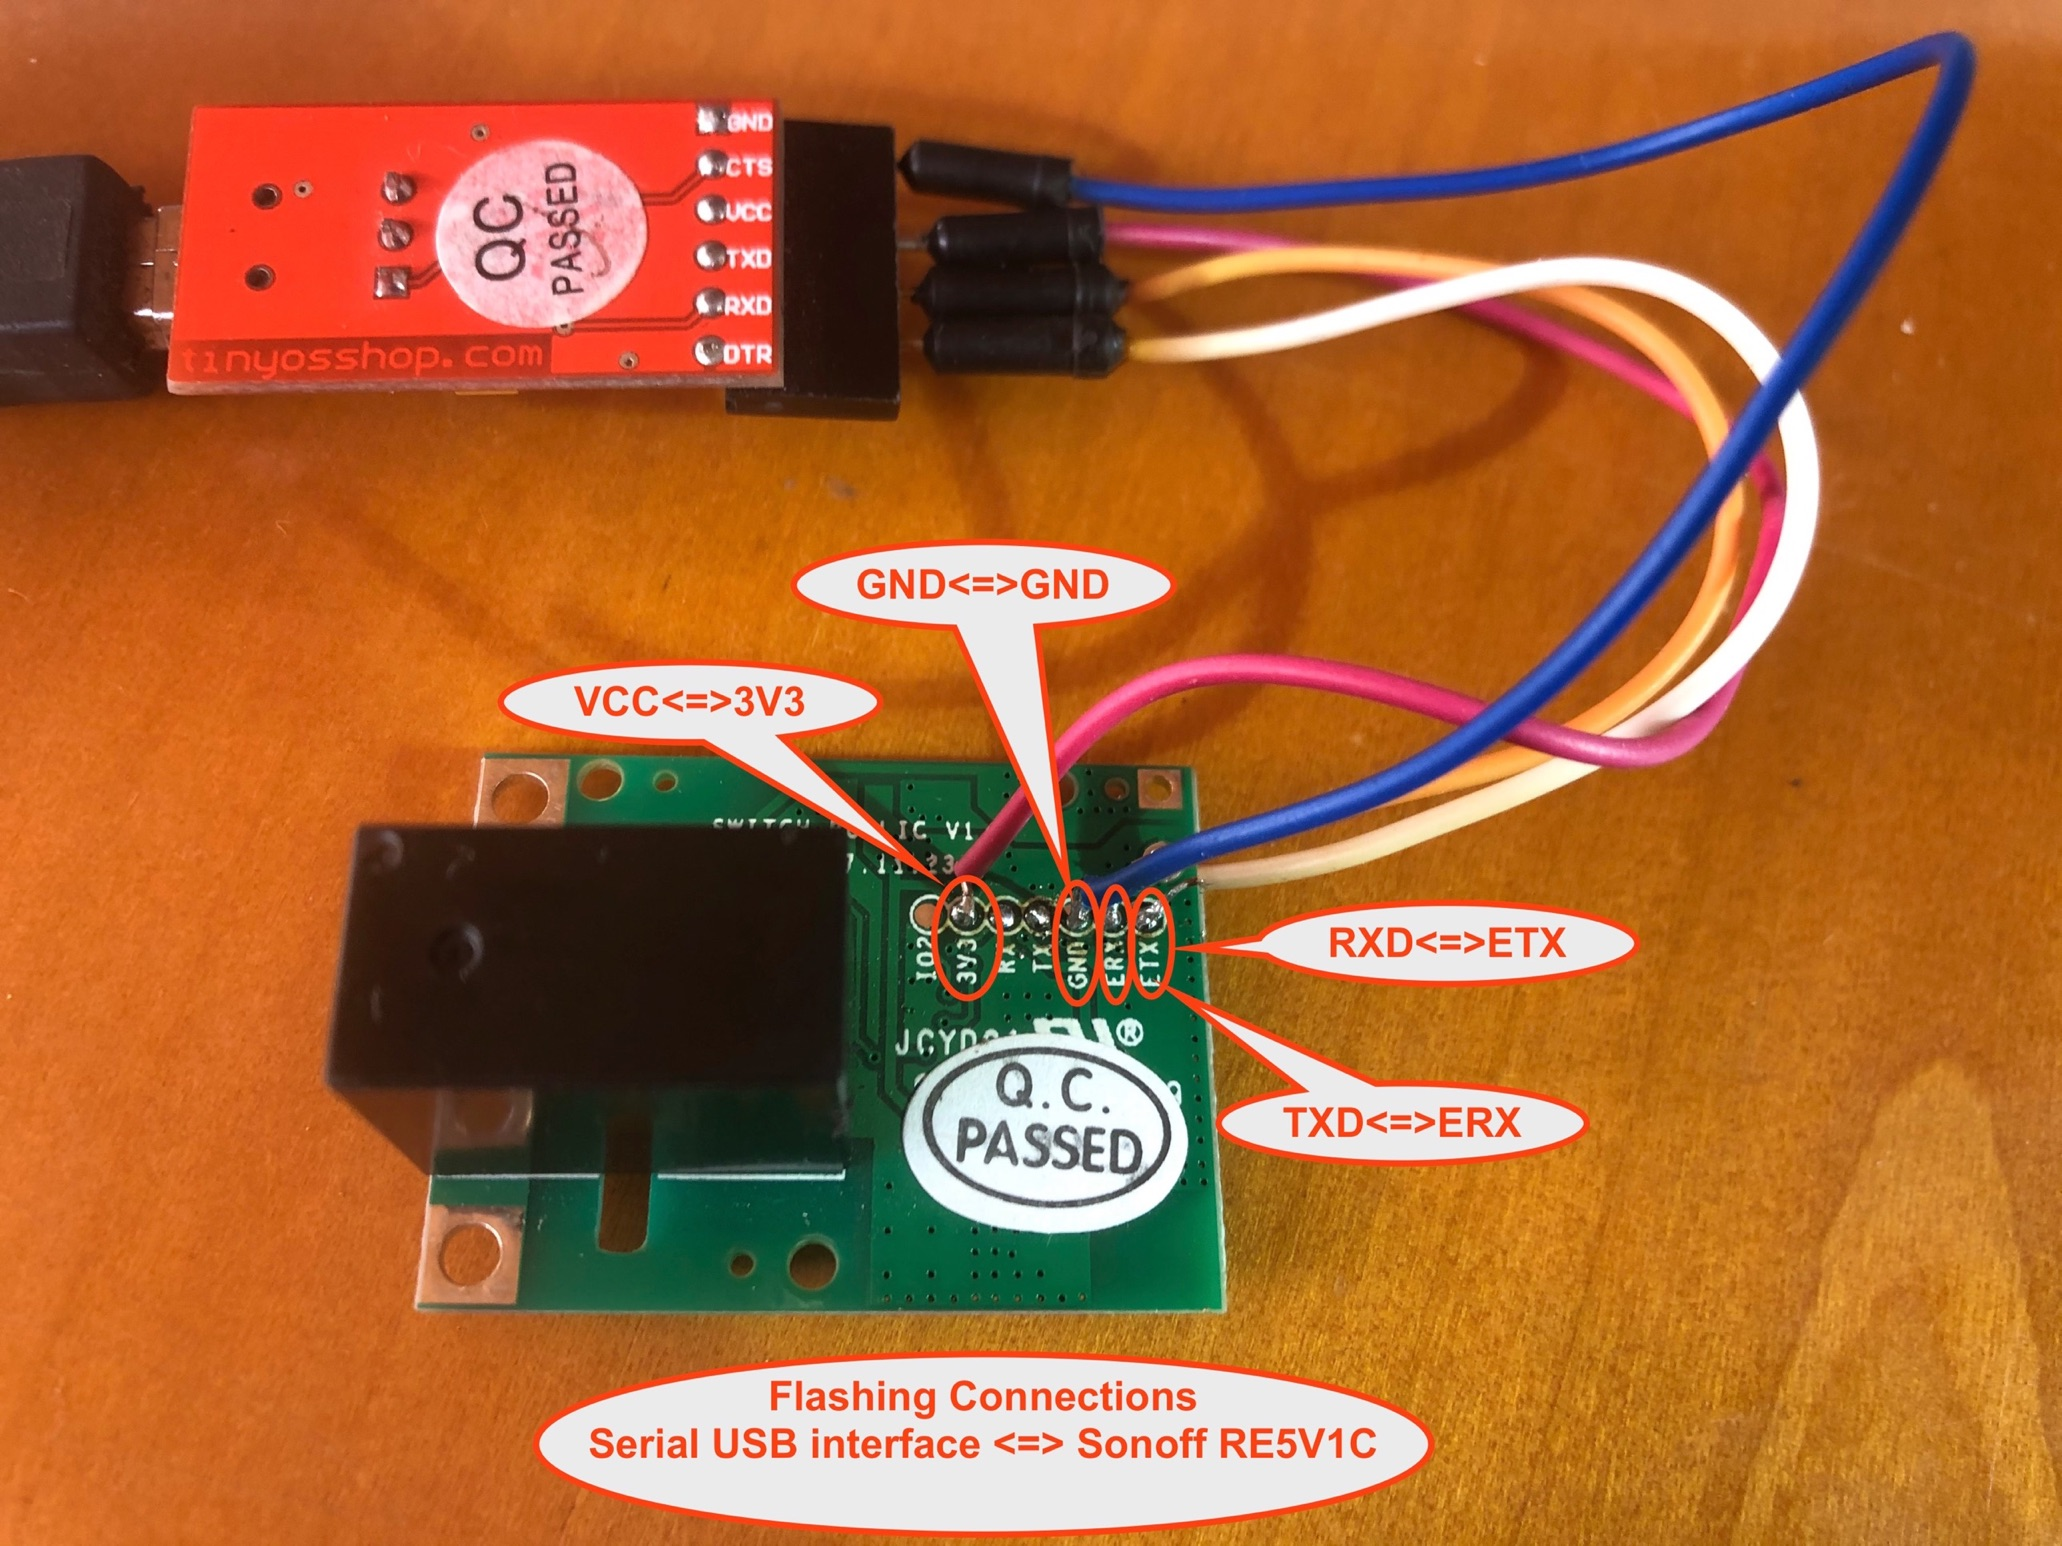 Sonoff RE5V1C serial flash connections